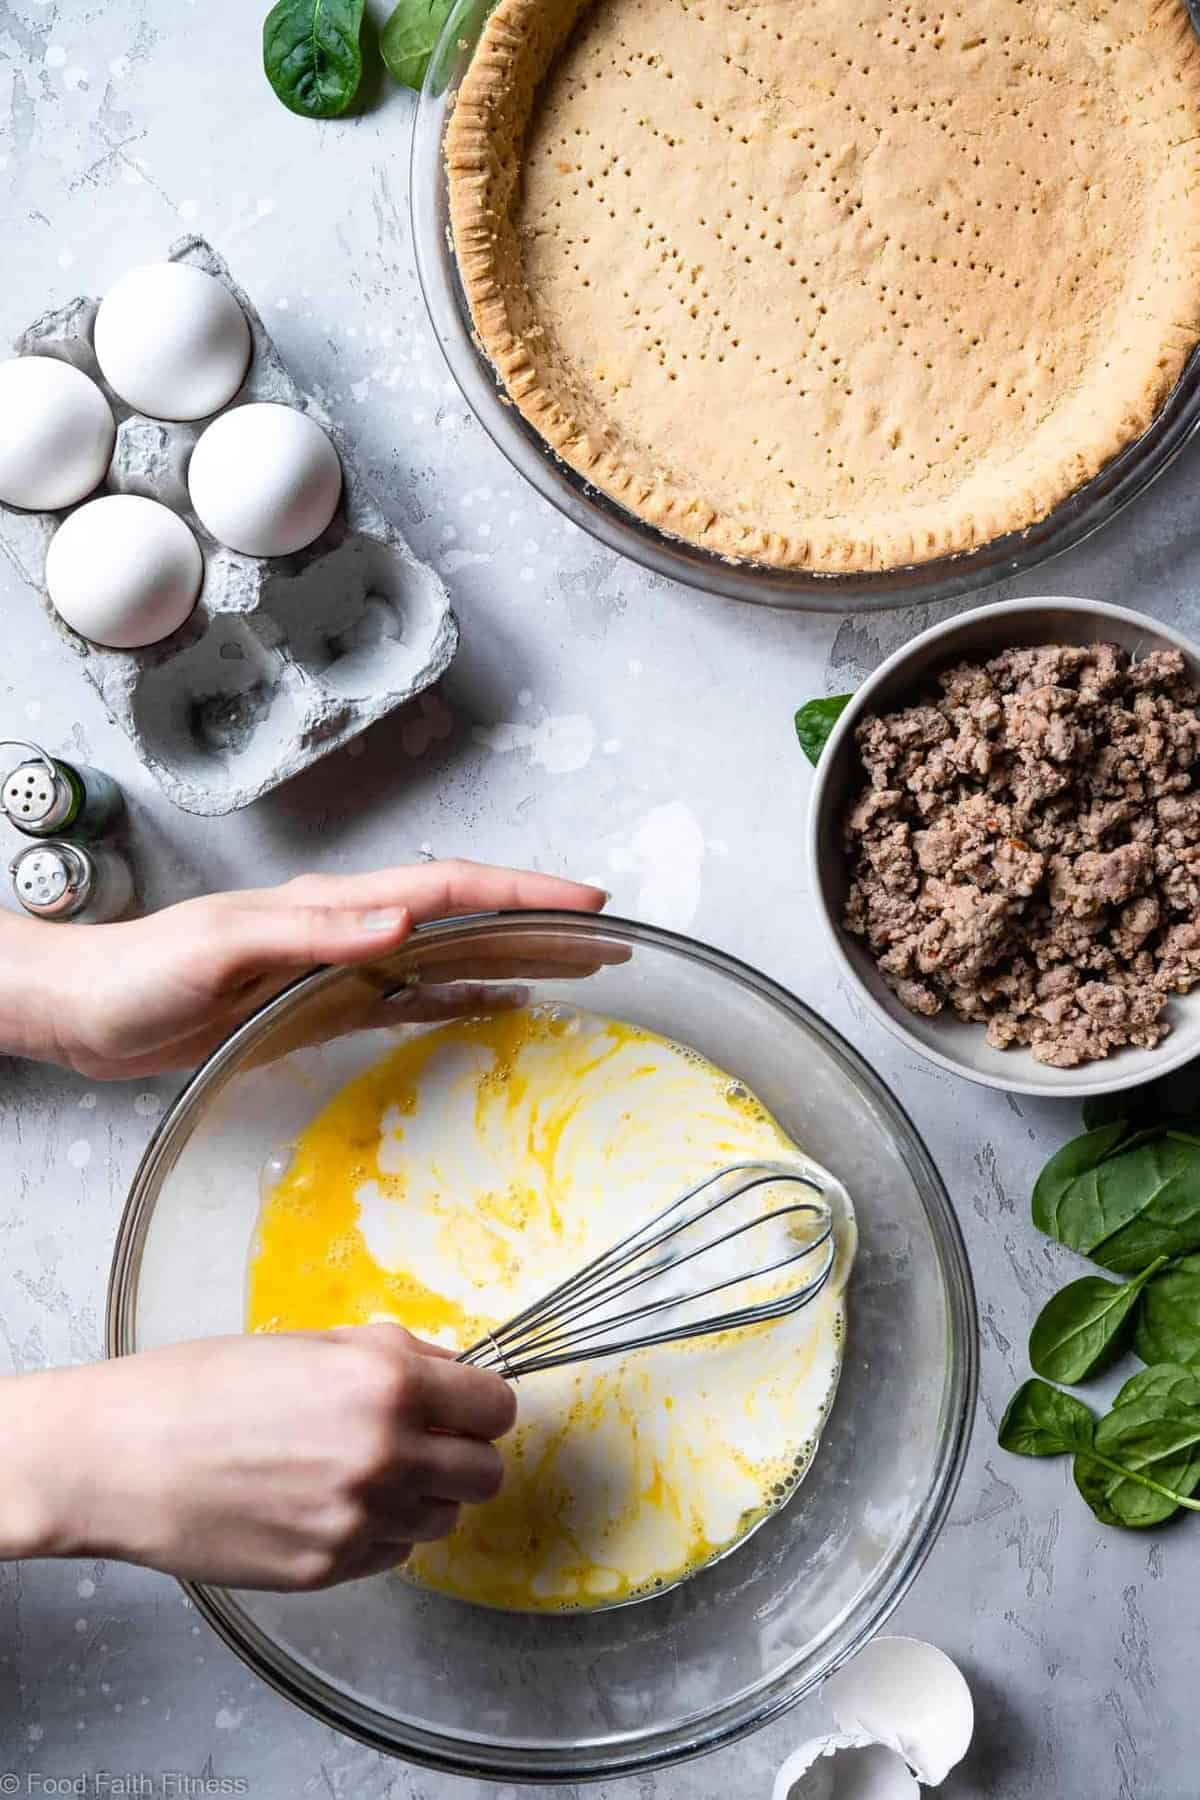 Gluten Free Low Carb Quiche Recipe - This EASY low carb, dairy free and paleo Quiche has a homemade, buttery, flaky Almond Flour Crust! Sausage, spinach and eggs make a high protein, filling breakfast!  Great for meal prep! | #Foodfaithfitness |